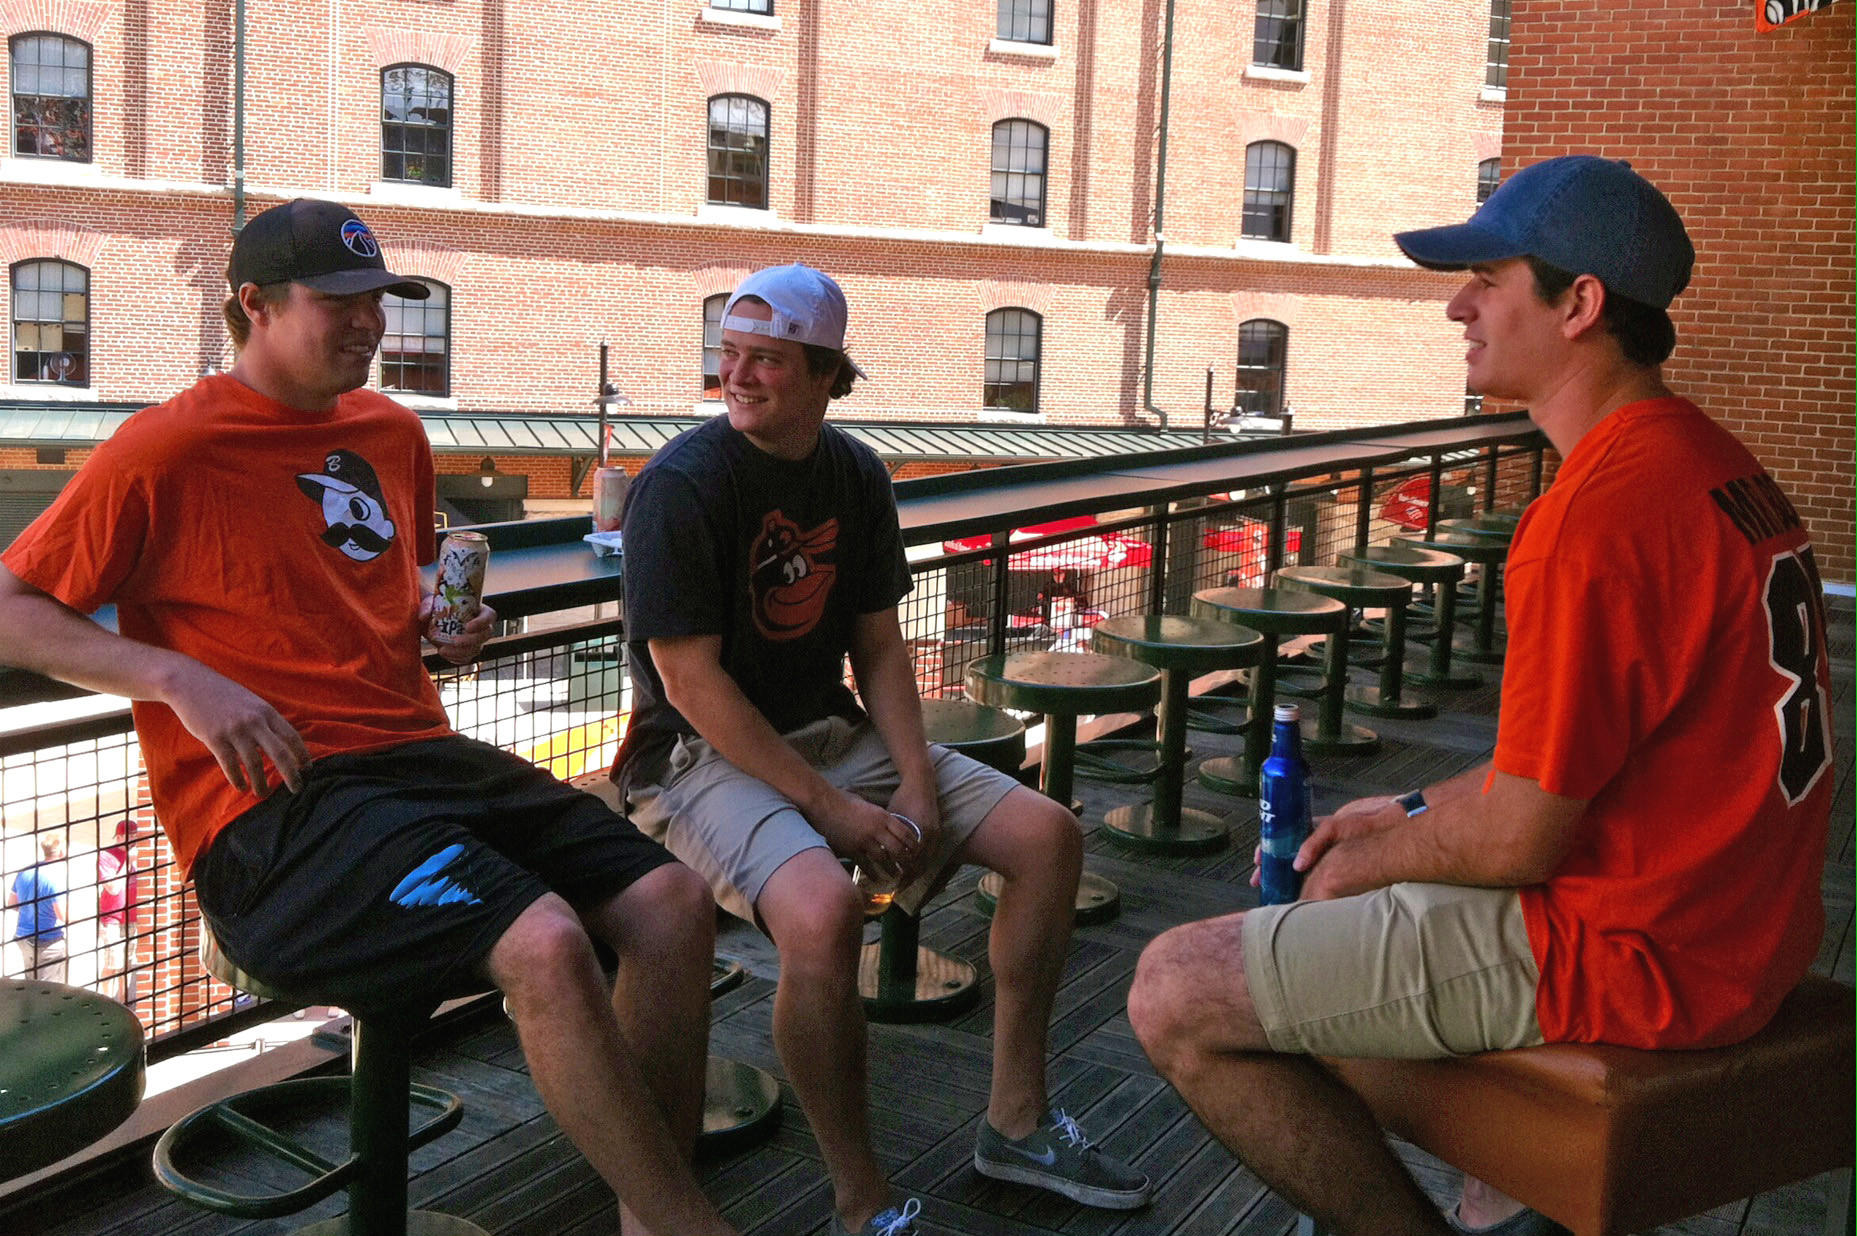 Orioles fans, from left, Andy Barton, Sean Wey and Pat Powderly, hang out at the bar over the batter's eye at Oriole Park at Camden Yards during the first game of a double-header against the Yankees.